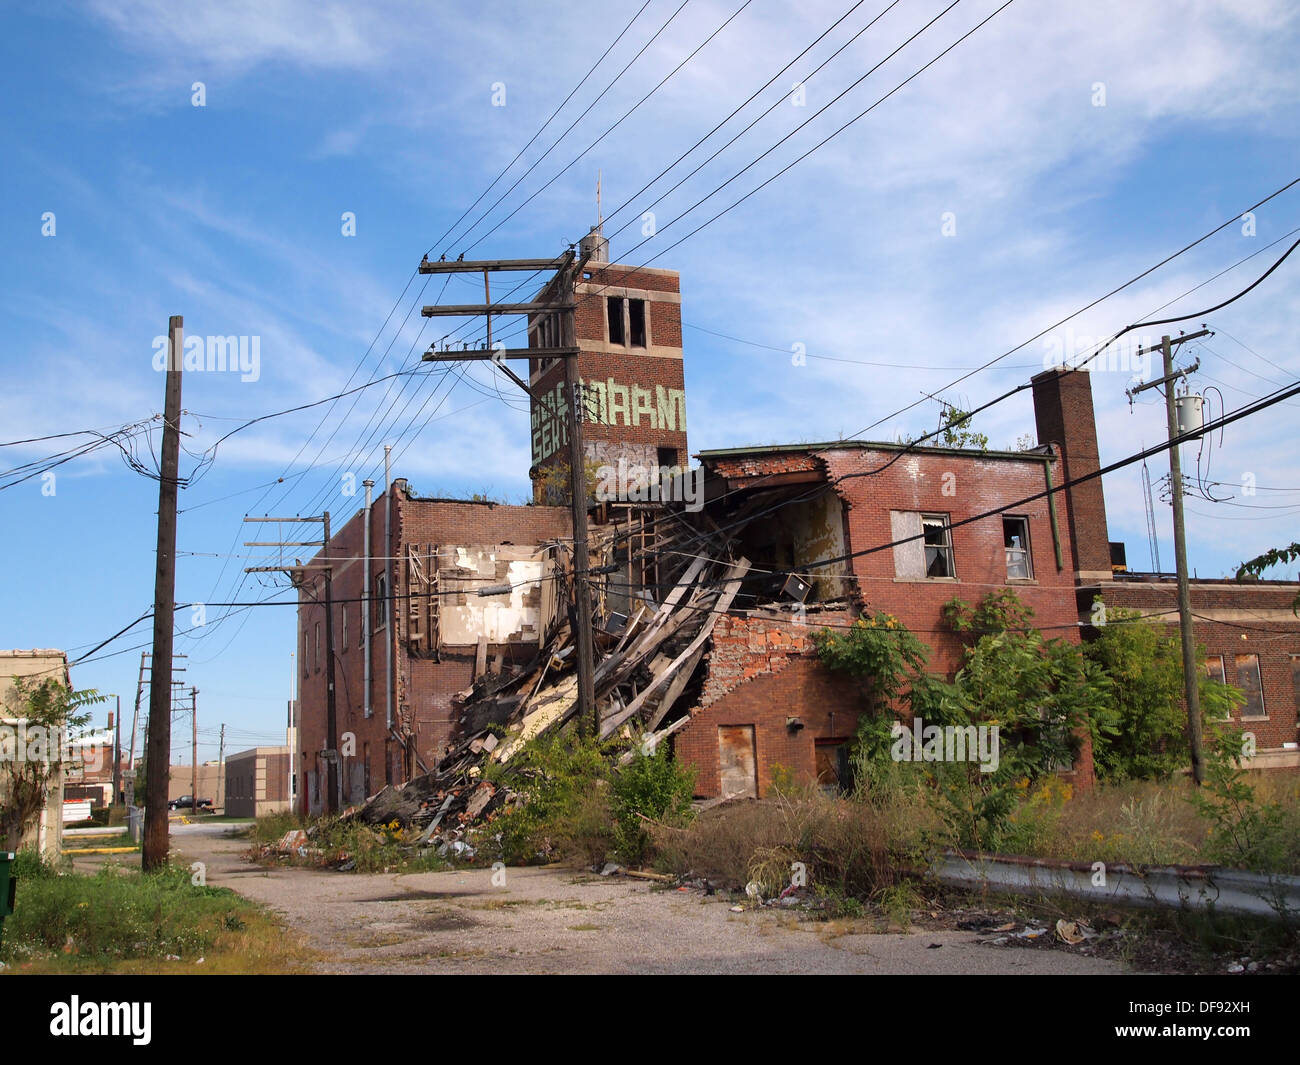 Derelict And Collapsed Building In Highland Park Detroit Michigan USA